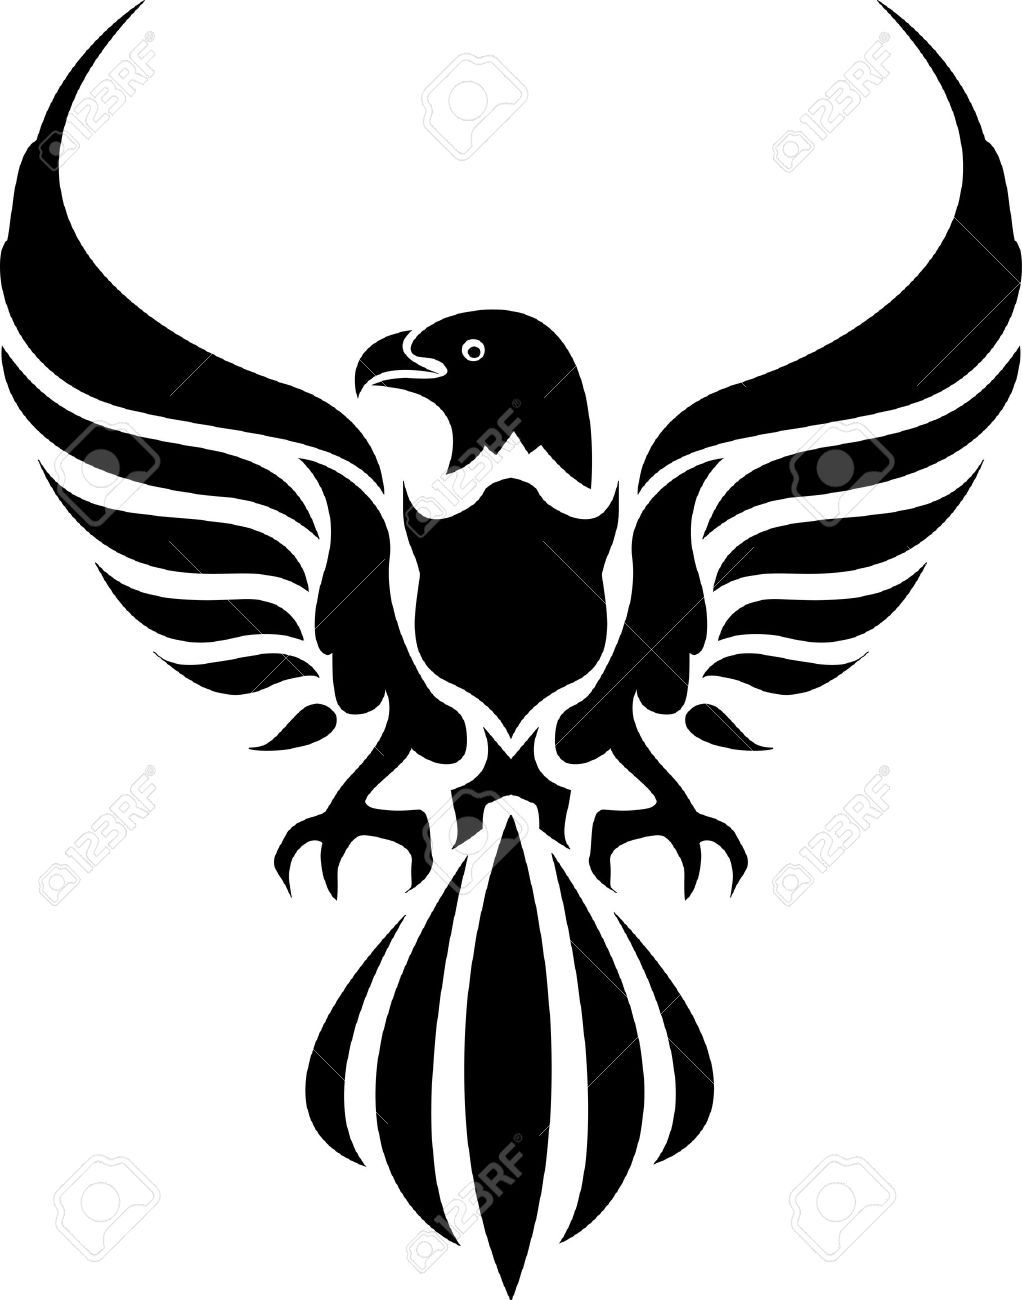 339a41de0 Black eagles isolated on white background Stock Vector - 14629619